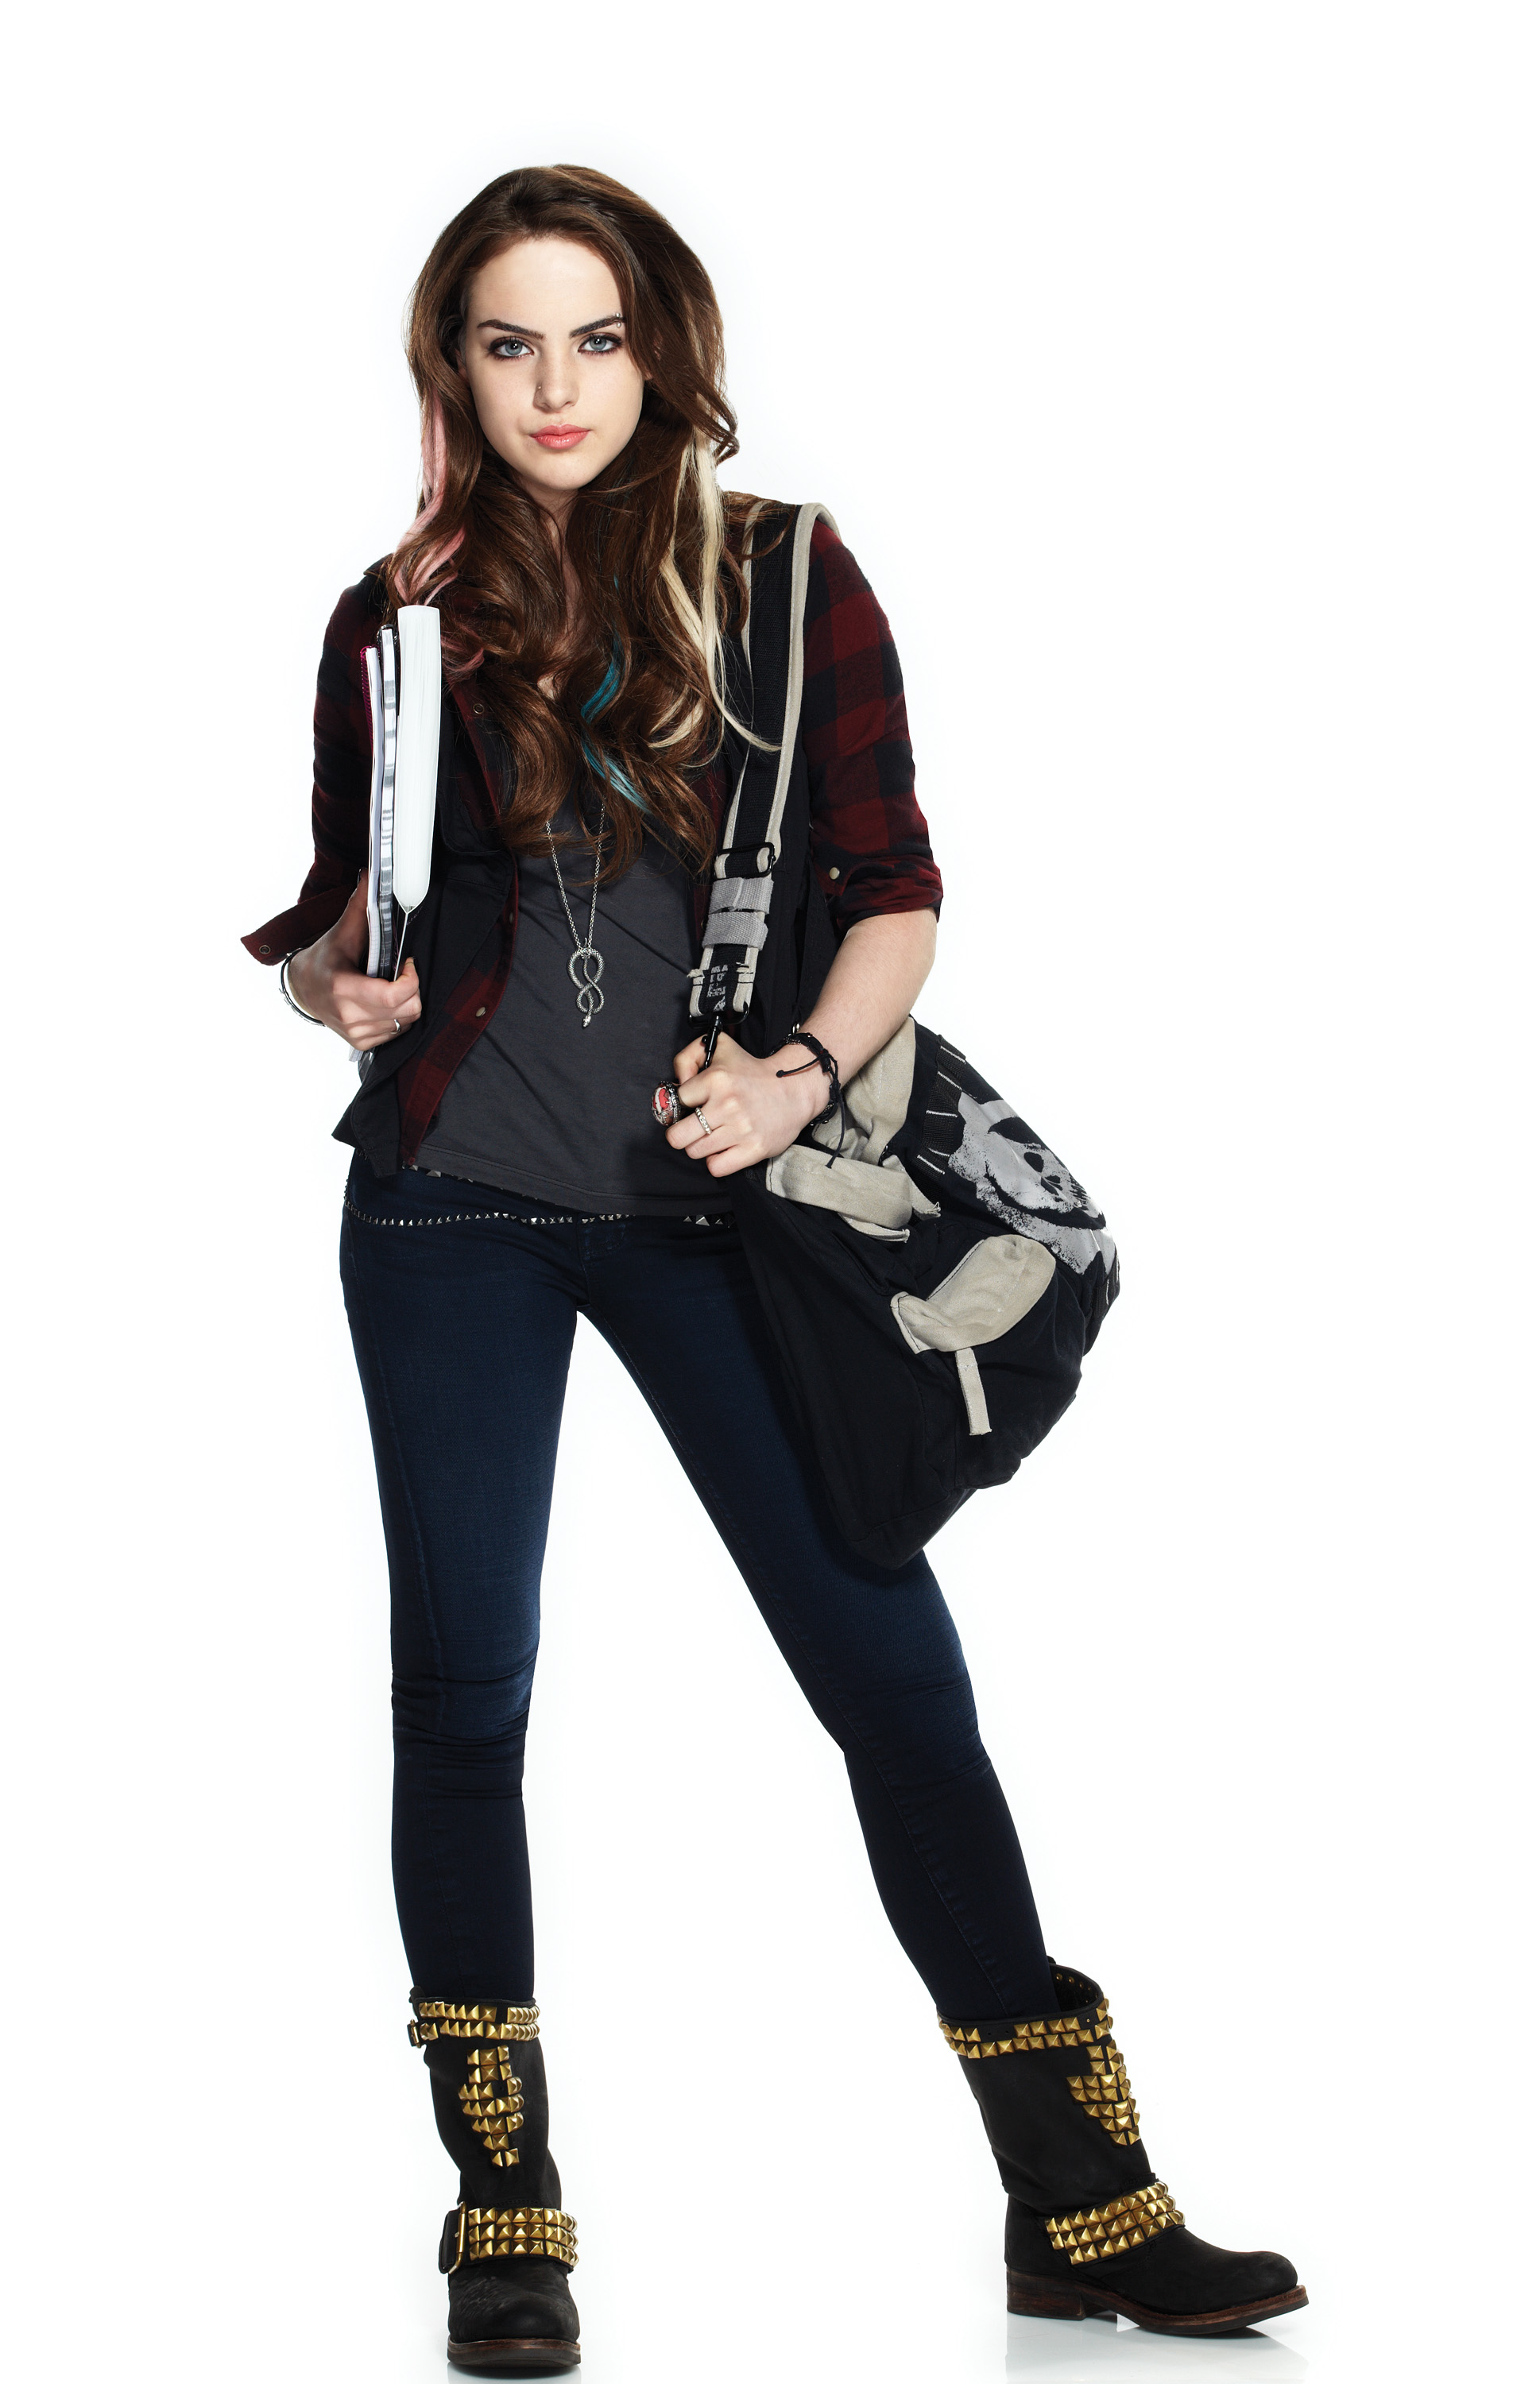 Victorious Season 1 Promos Elizabeth Gillies Photo